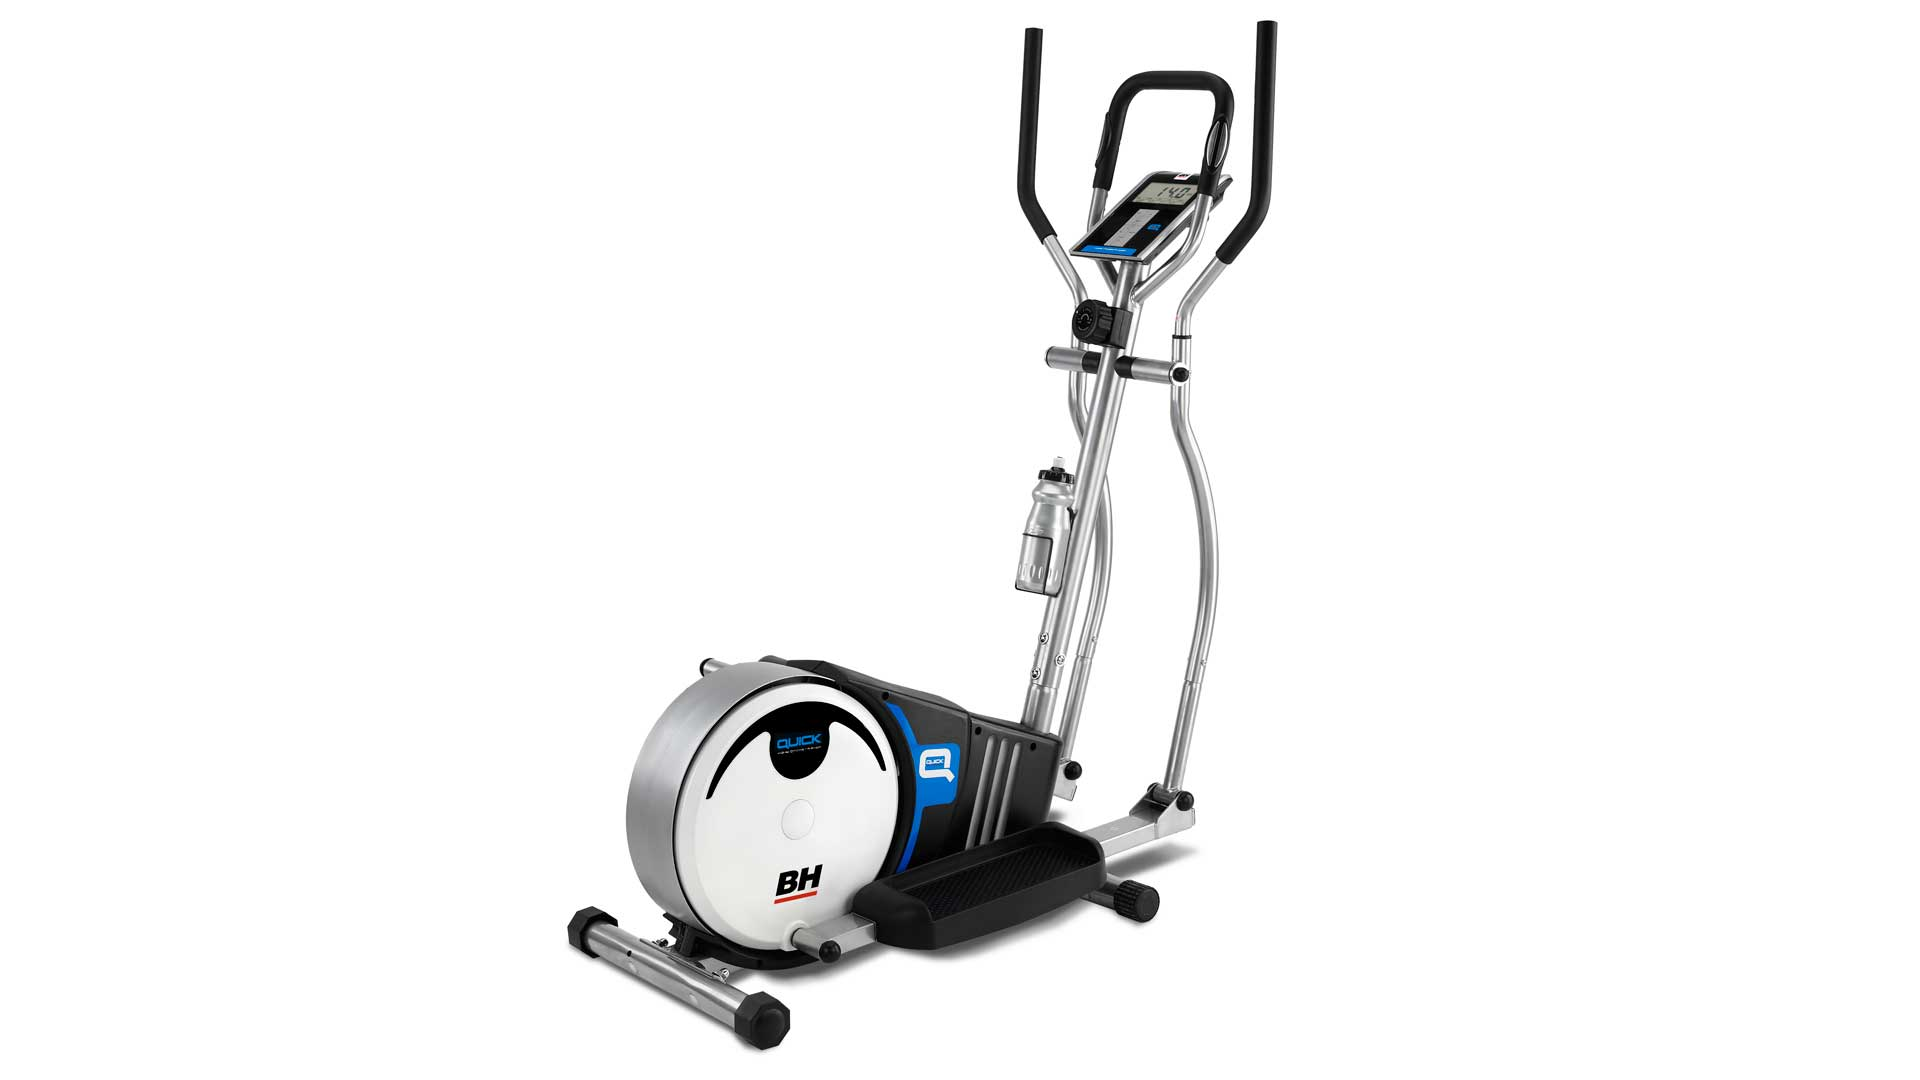 d400b29a7d2c Quick Elliptical trainer | Occasional use | BH Fitness at home